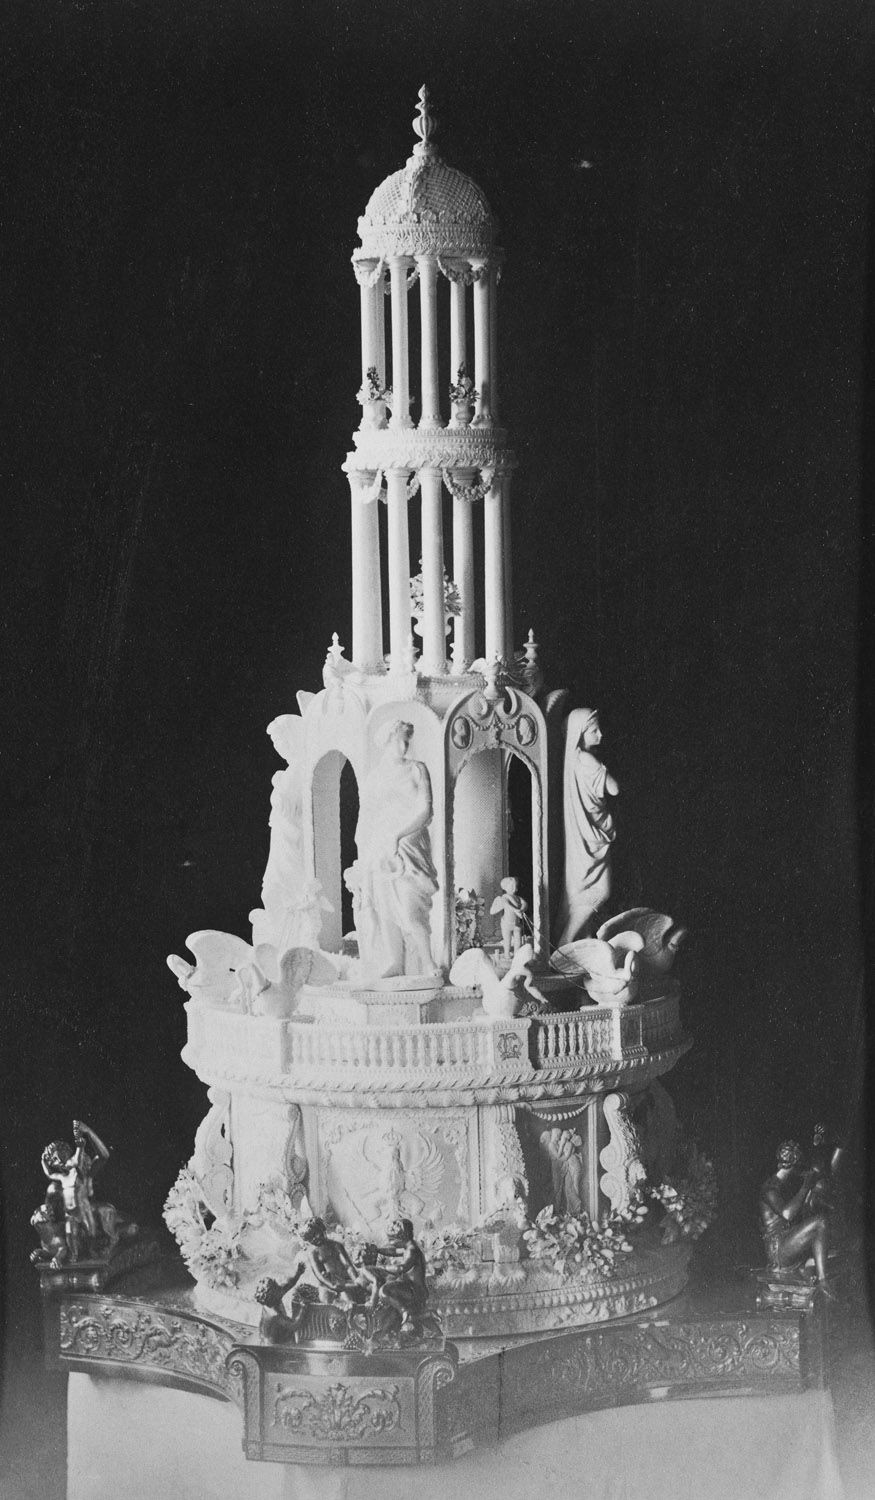 The Royal Collection: The wedding cake of the Duke and Duchess of Connaught, March 13 1879